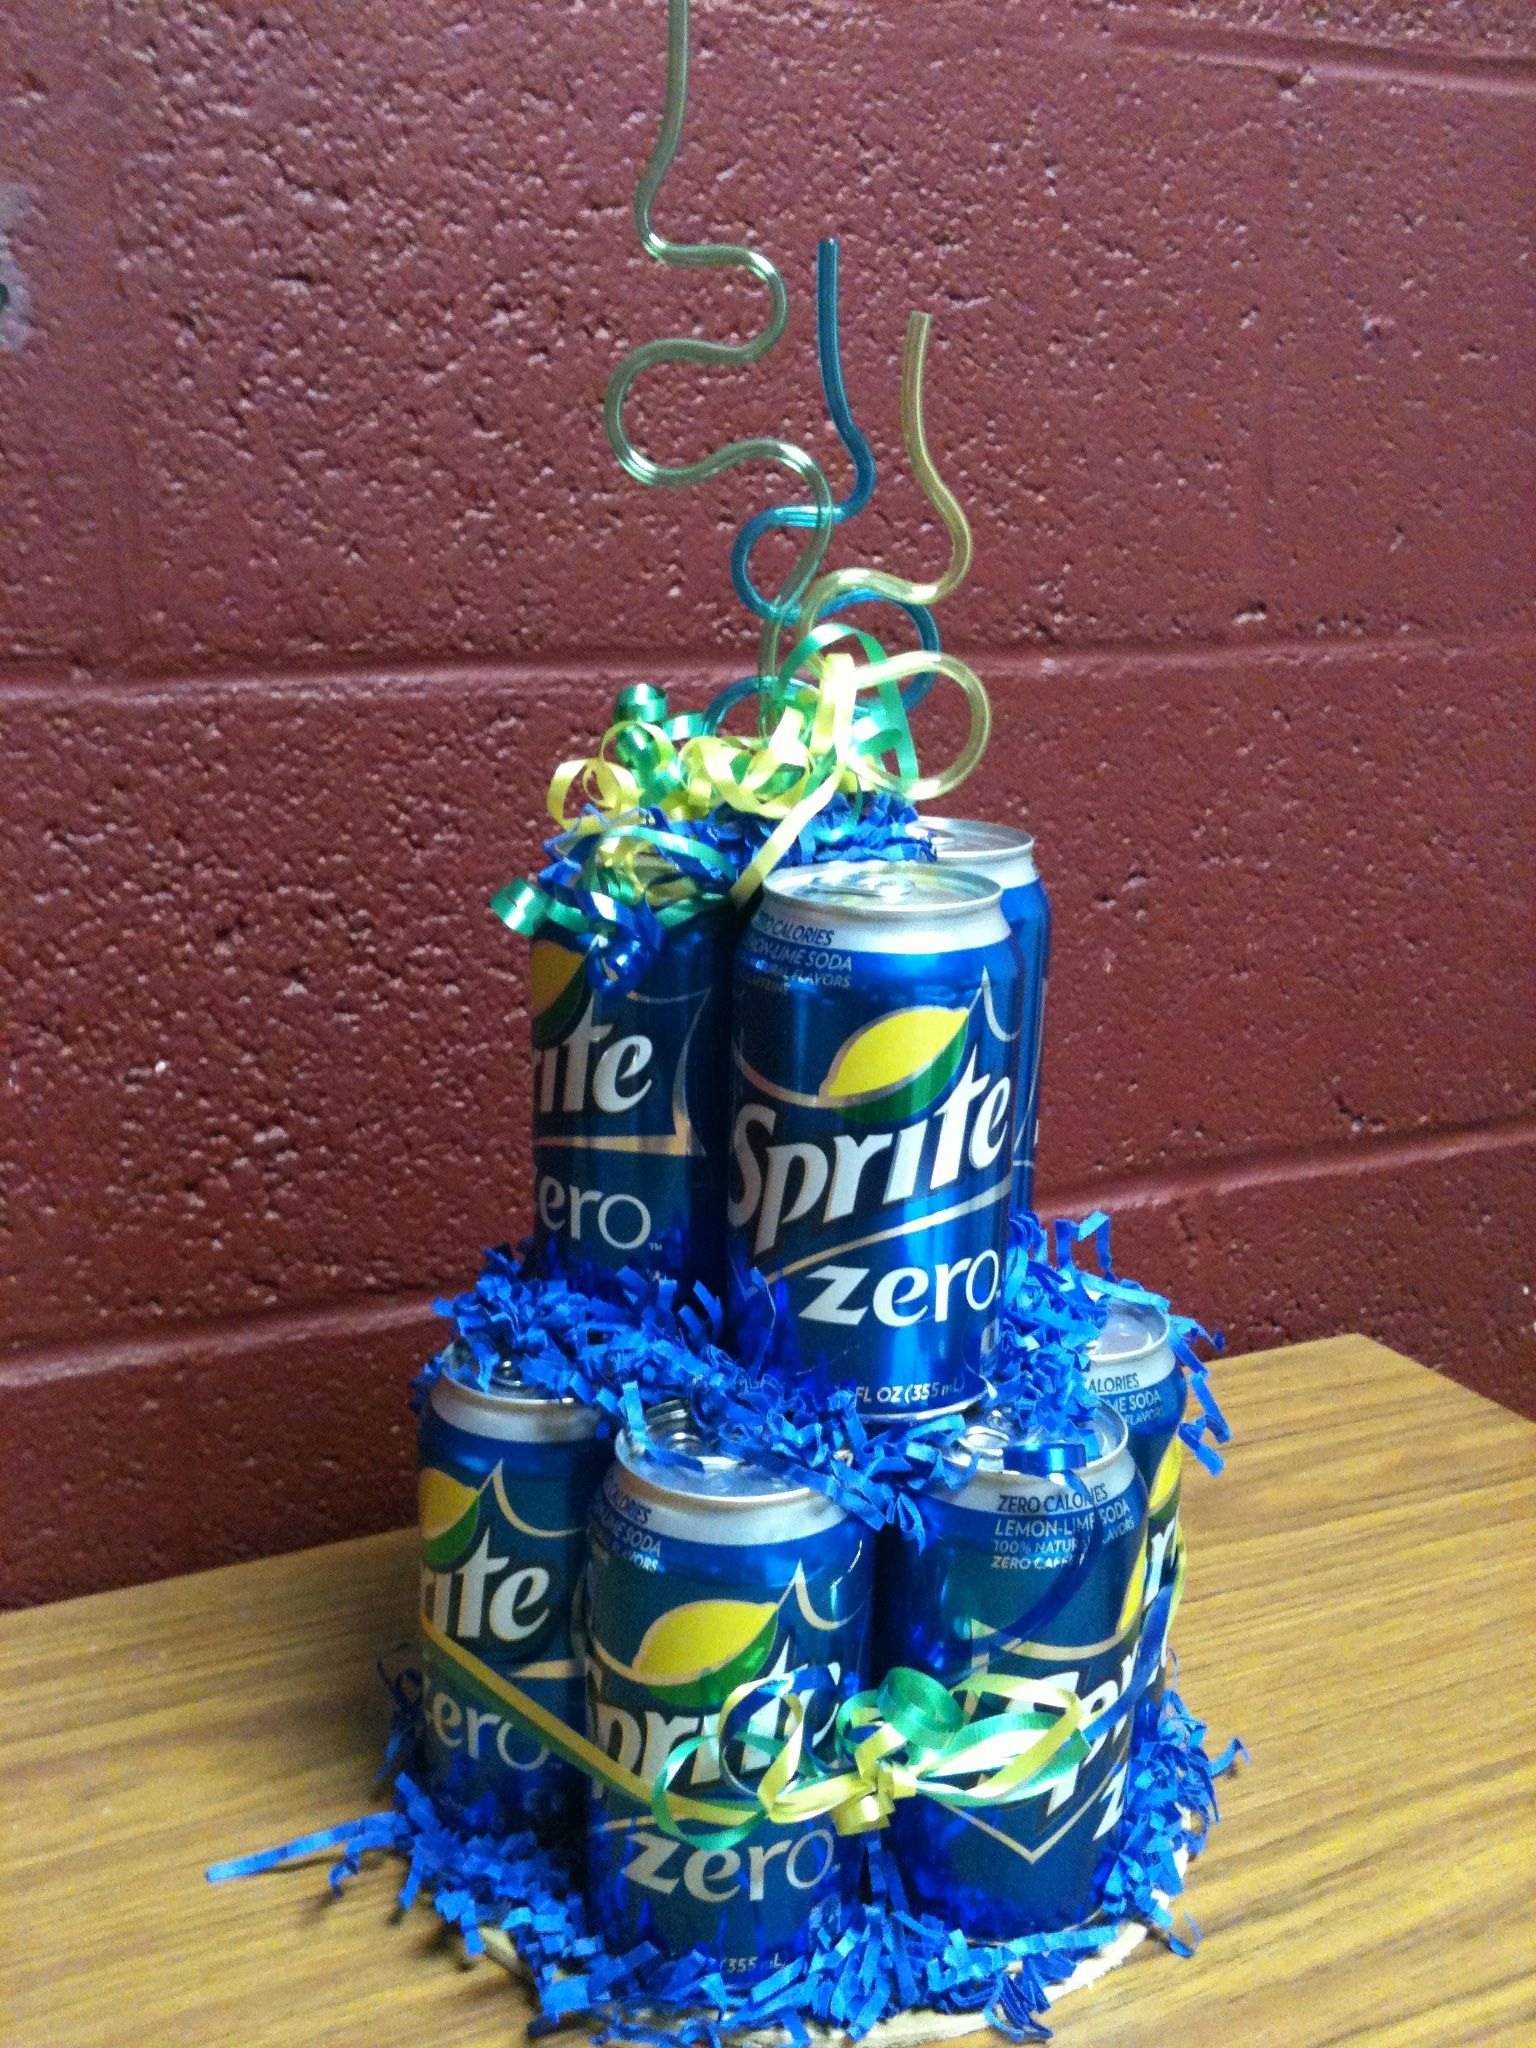 "Sprite zero "" cake"", great gift for someone who has almost everything."